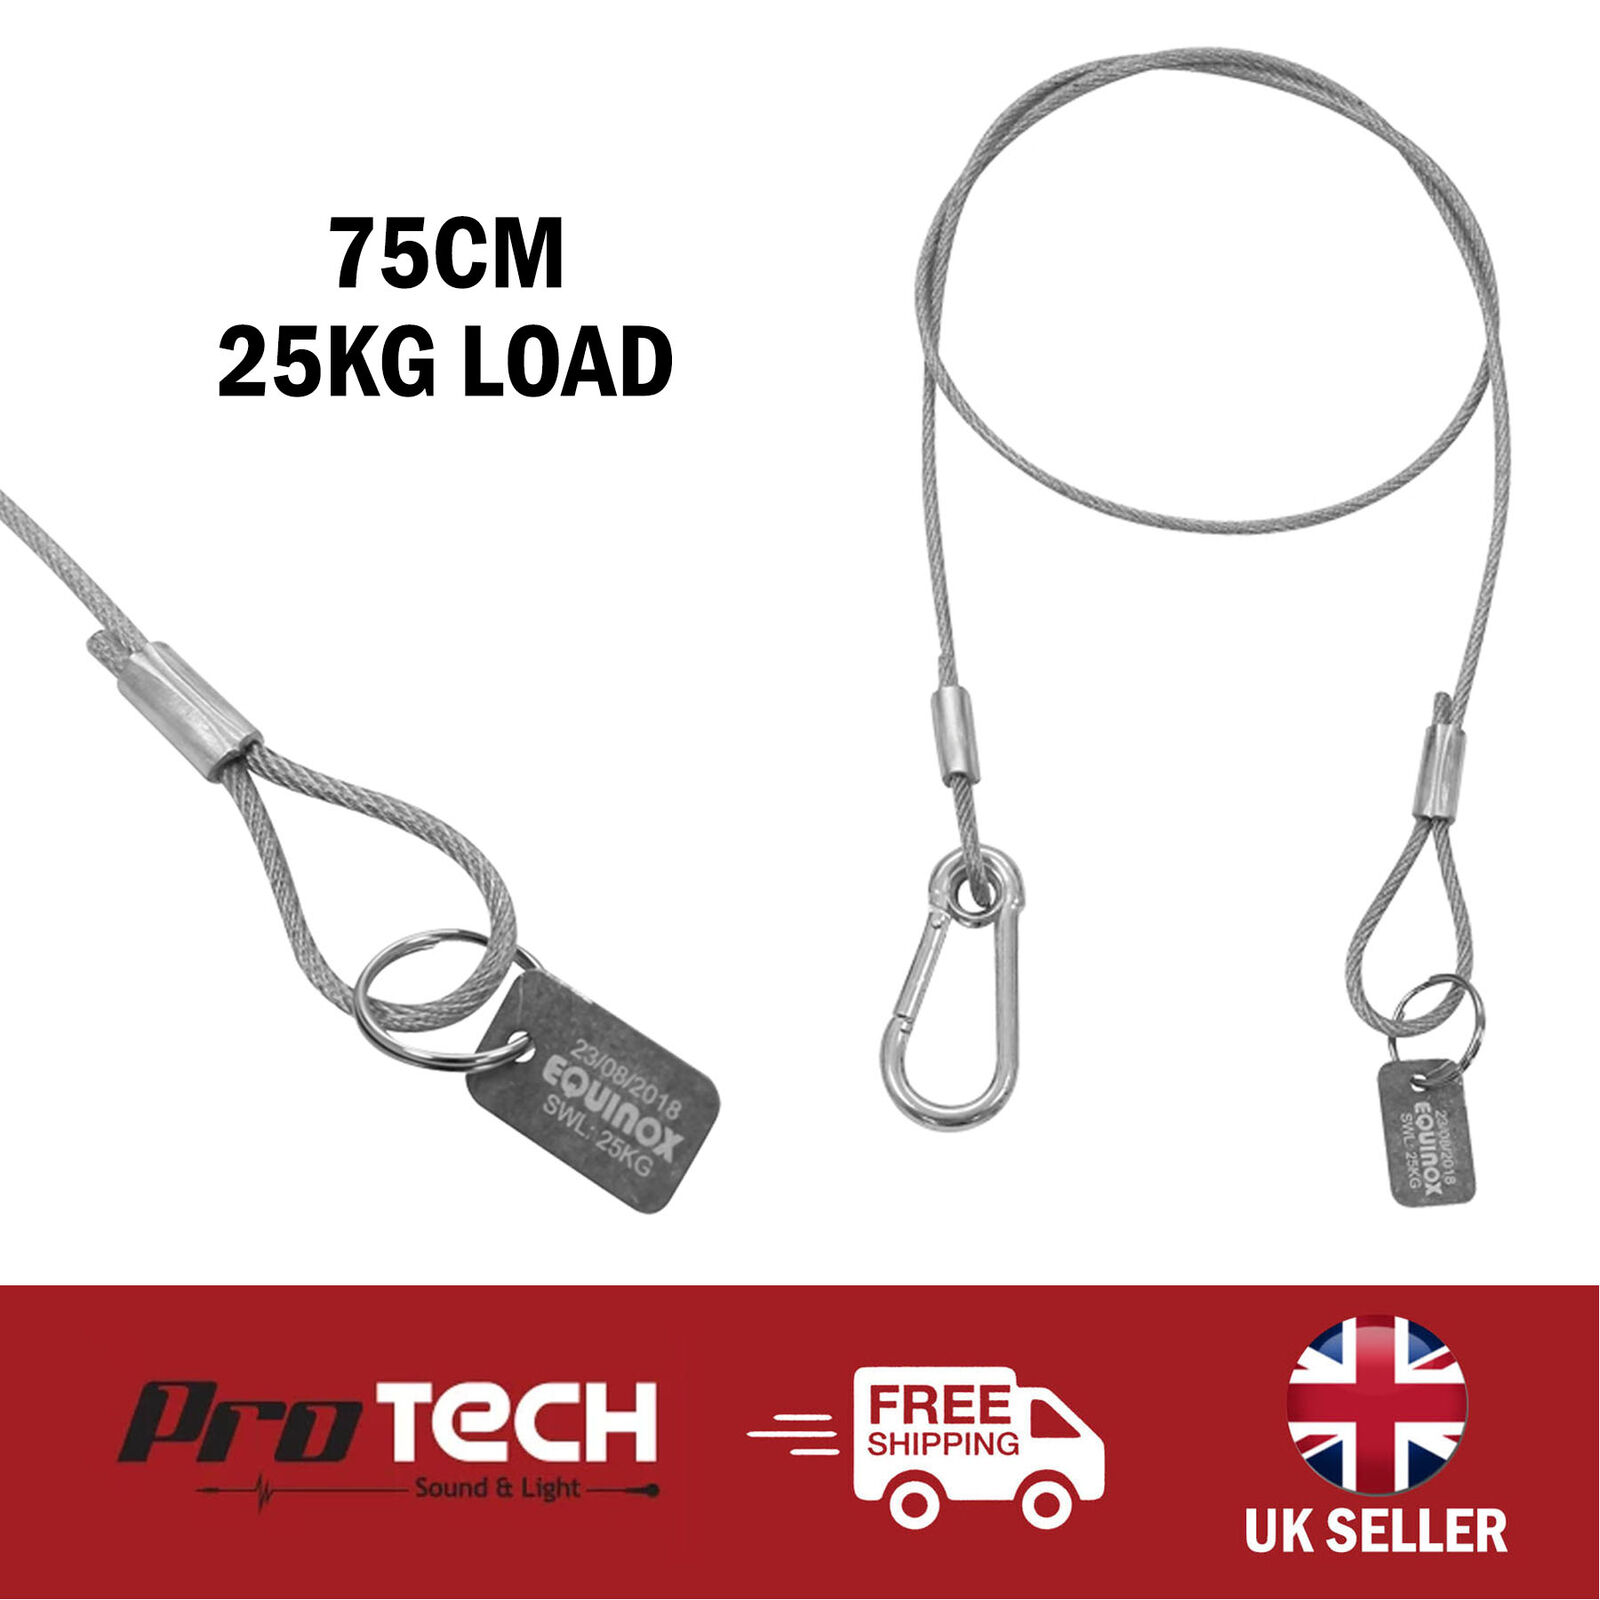 Equinox 75cm PVC Coated Safety Wire Carabiner Bond Cable Stage Lighting 25KG